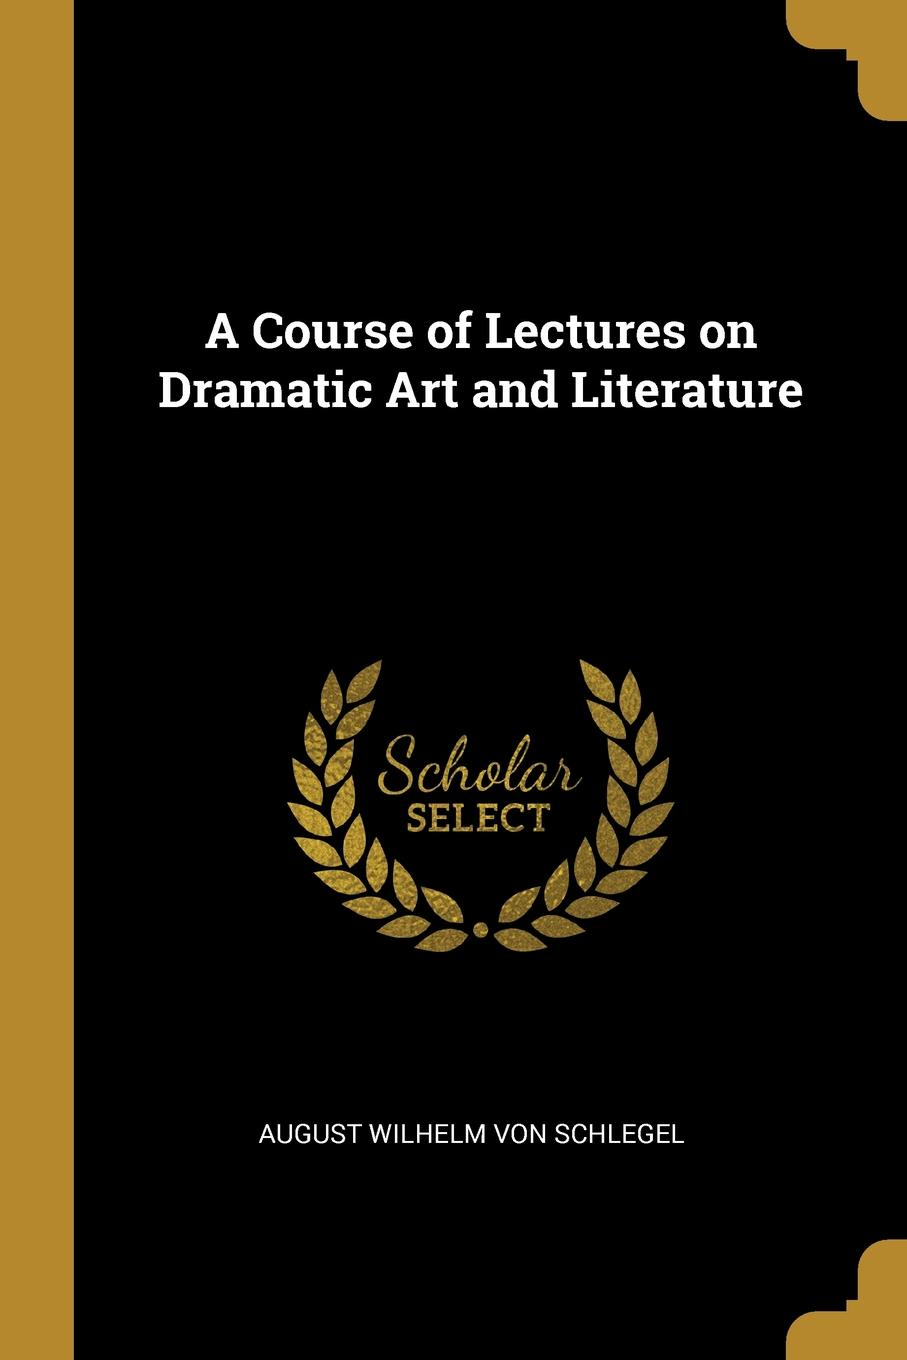 August Wilhelm von Schlegel. A Course of Lectures on Dramatic Art and Literature